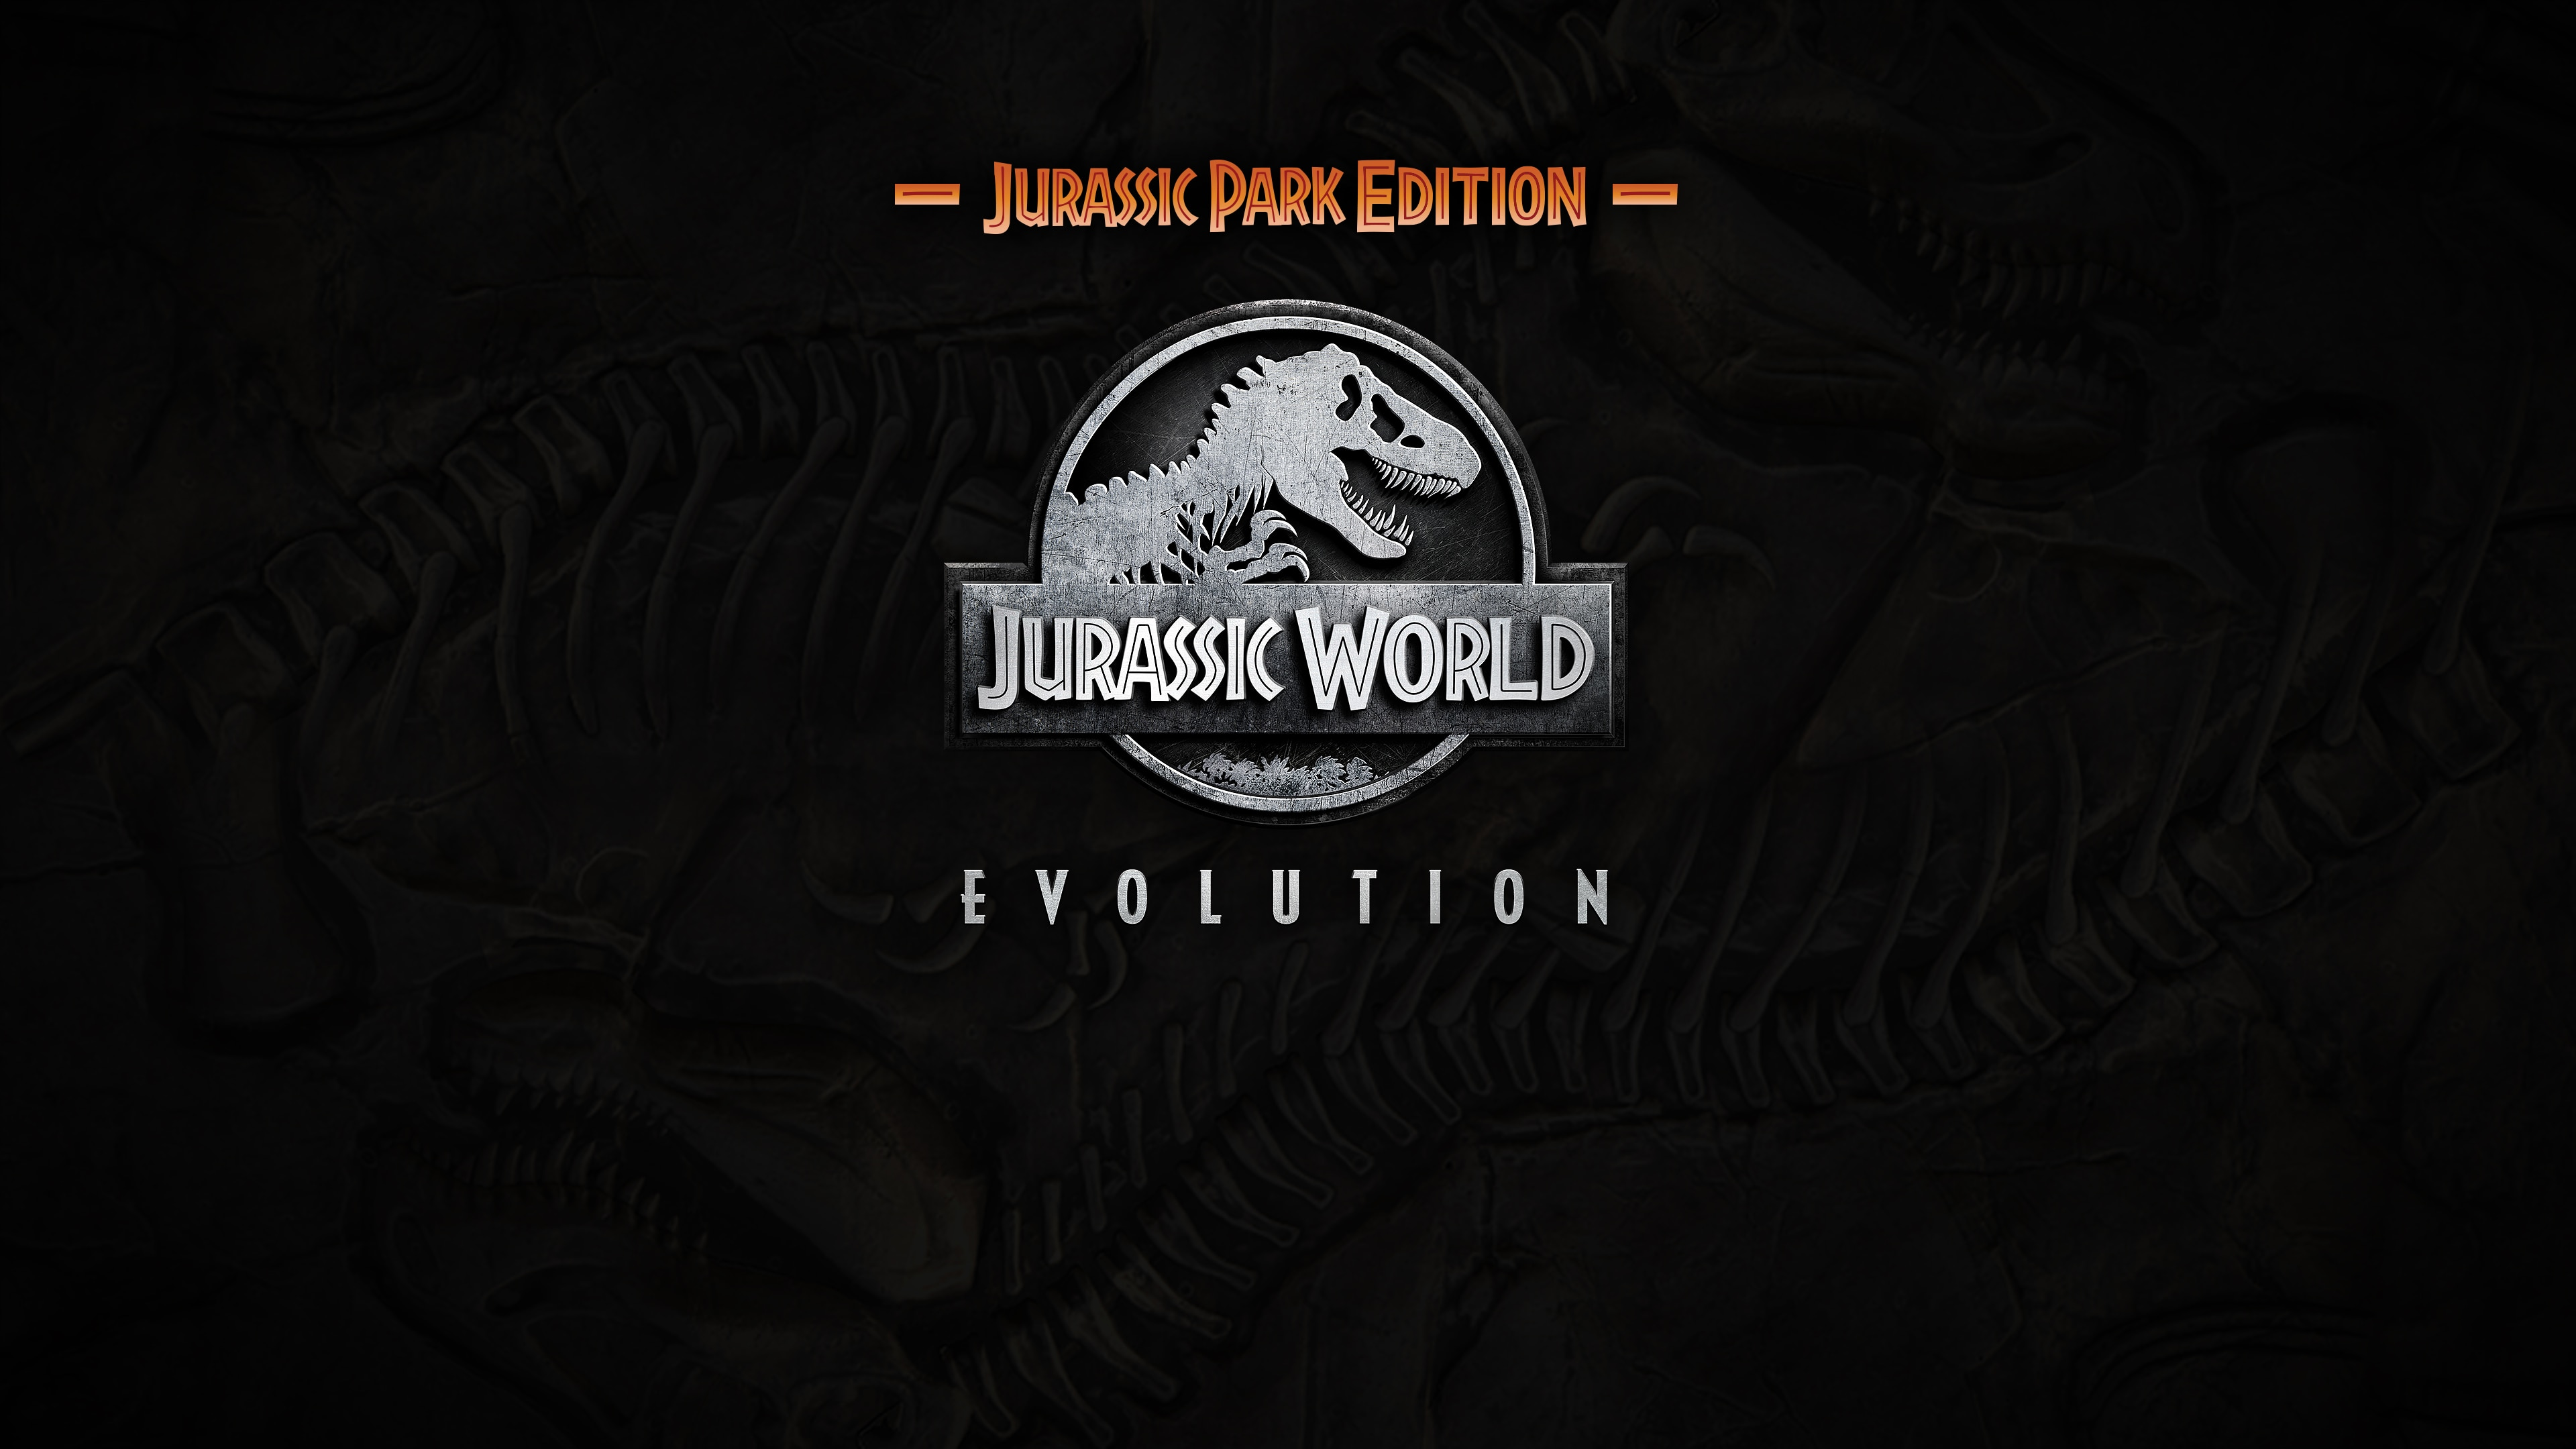 Jurassic World Evolution: Jurassic-Park-Edition